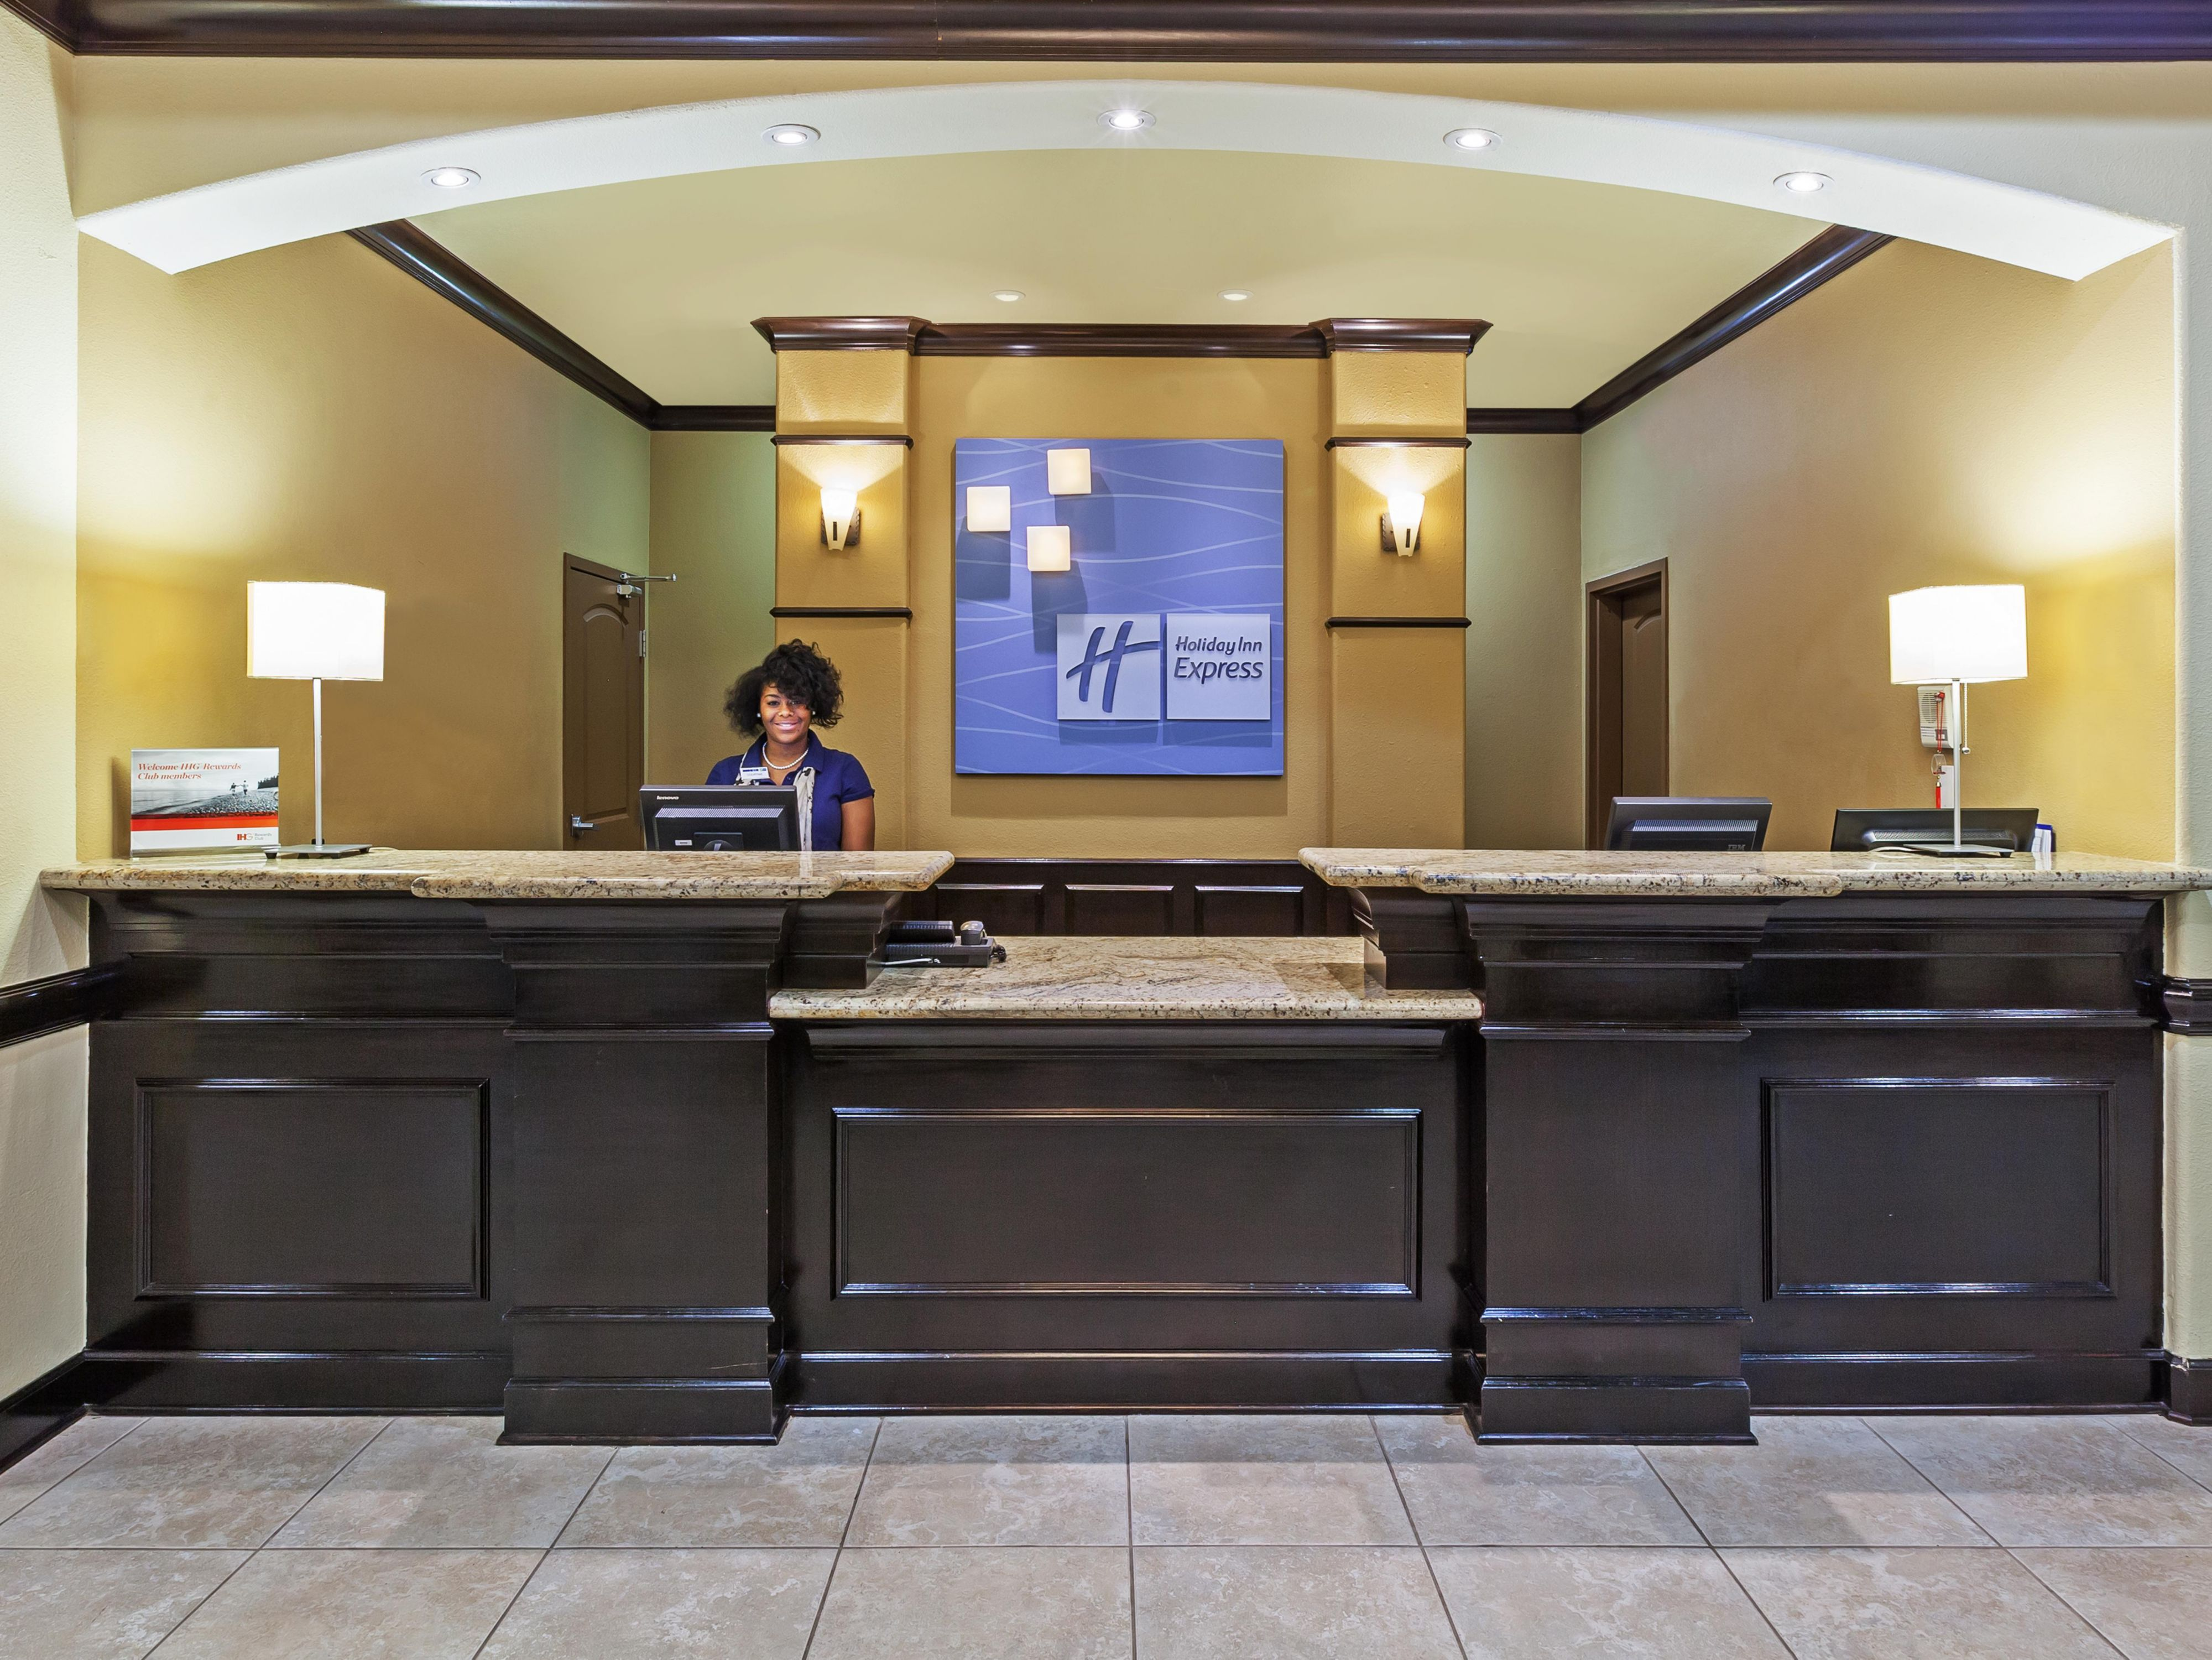 Our friendly Front Desk staff are here to assist you